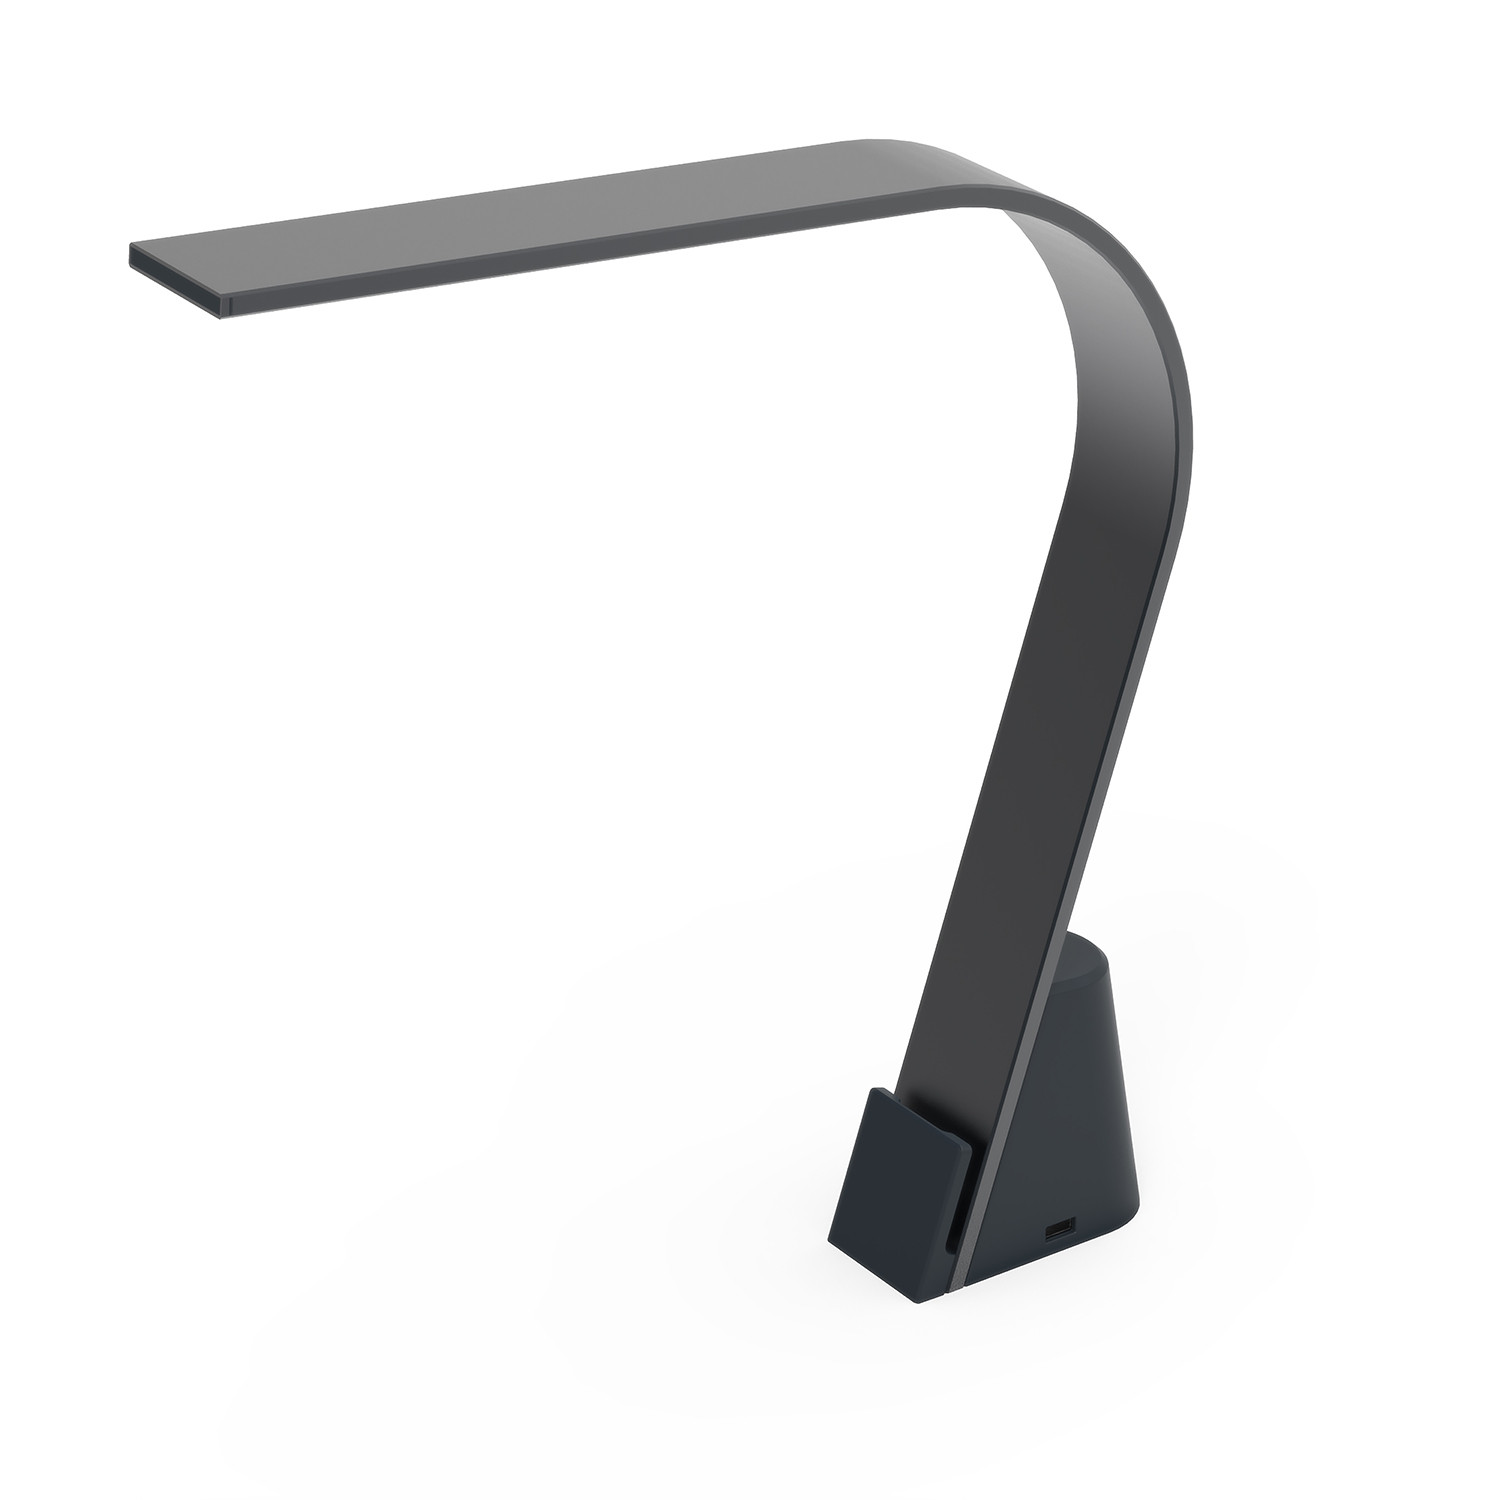 LUX Brooklyn LED Task Light // USB (Aluminum) - LUX LED ...